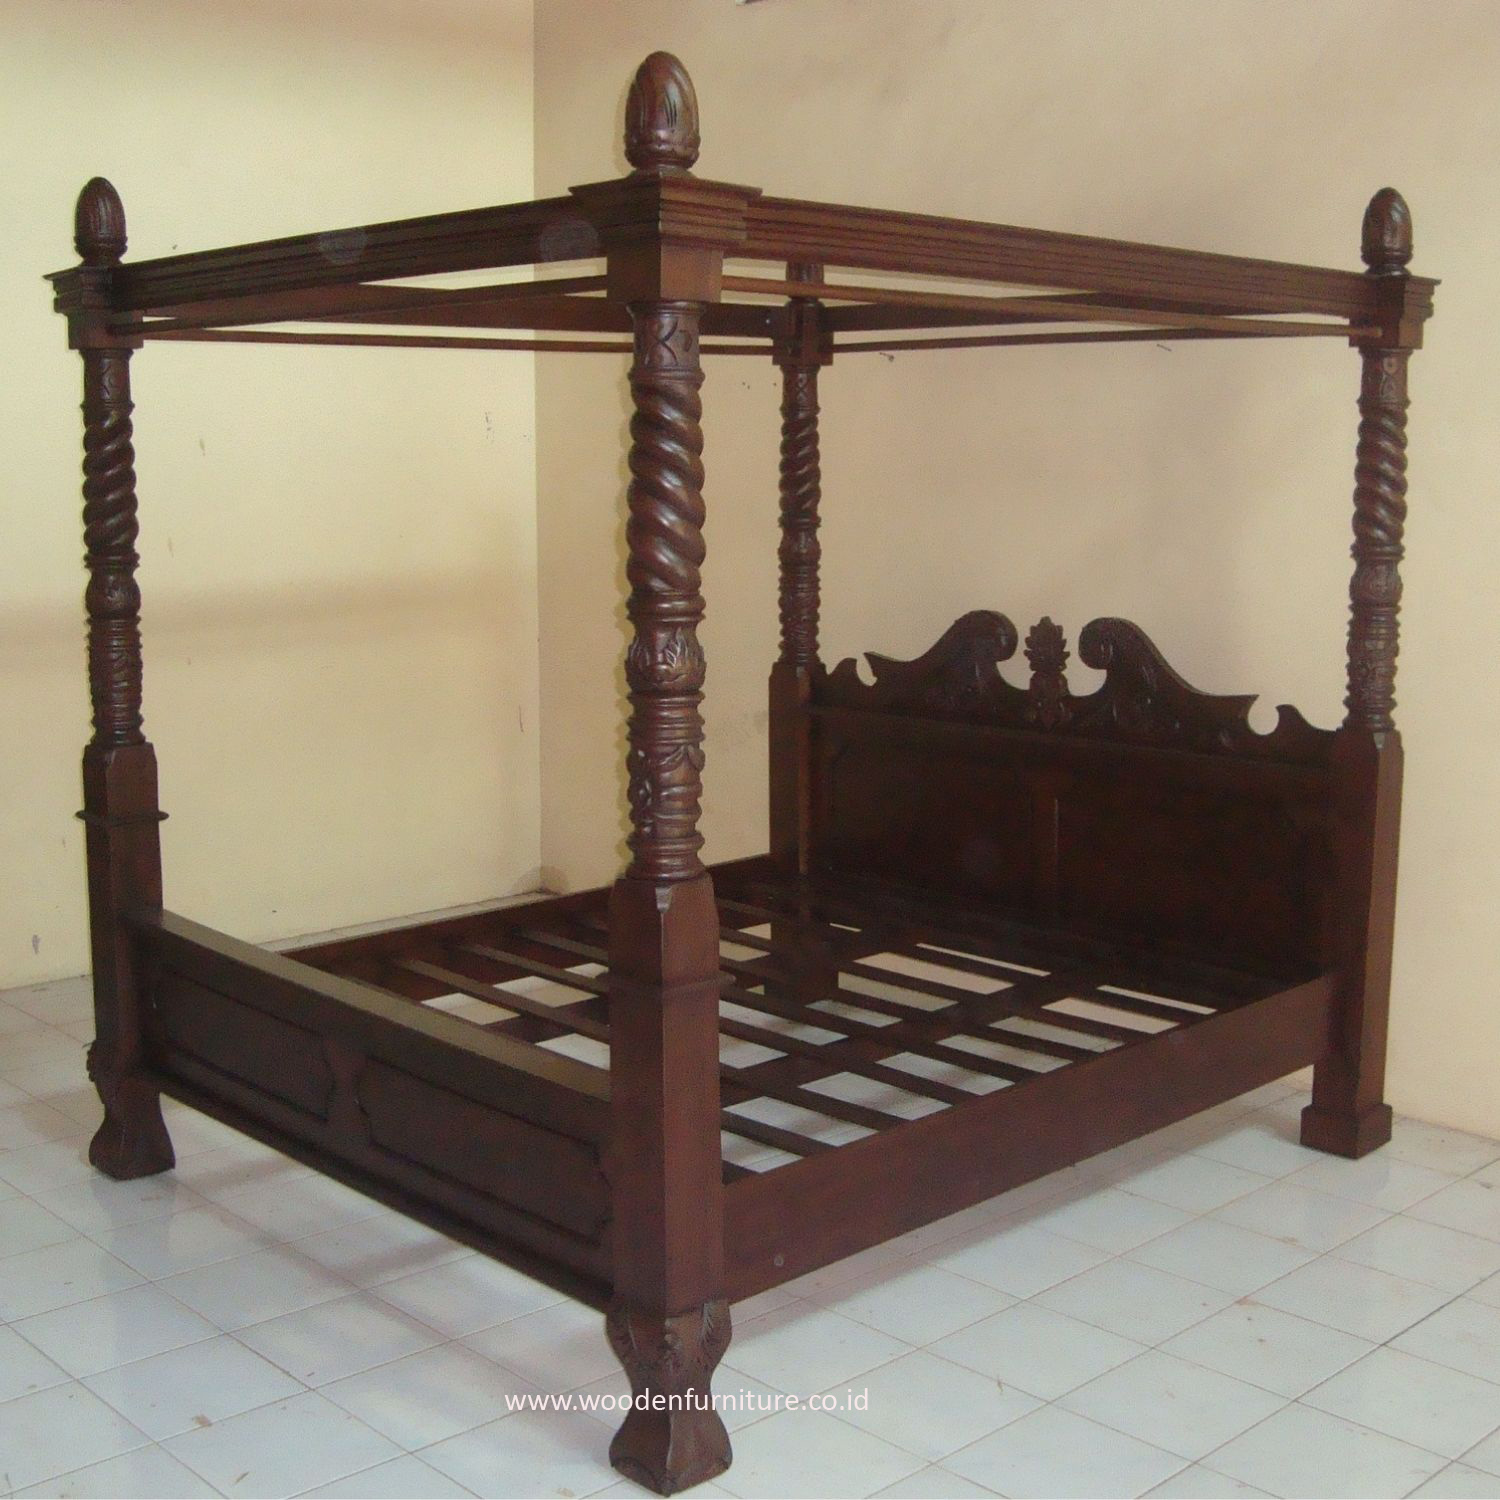 Teak Canopy Bed Wooden Four Posters Bed Antique Reproduction Bed Vintage  Bedroom Furniture Classic European Home Furniture - Buy Four Posters Teak